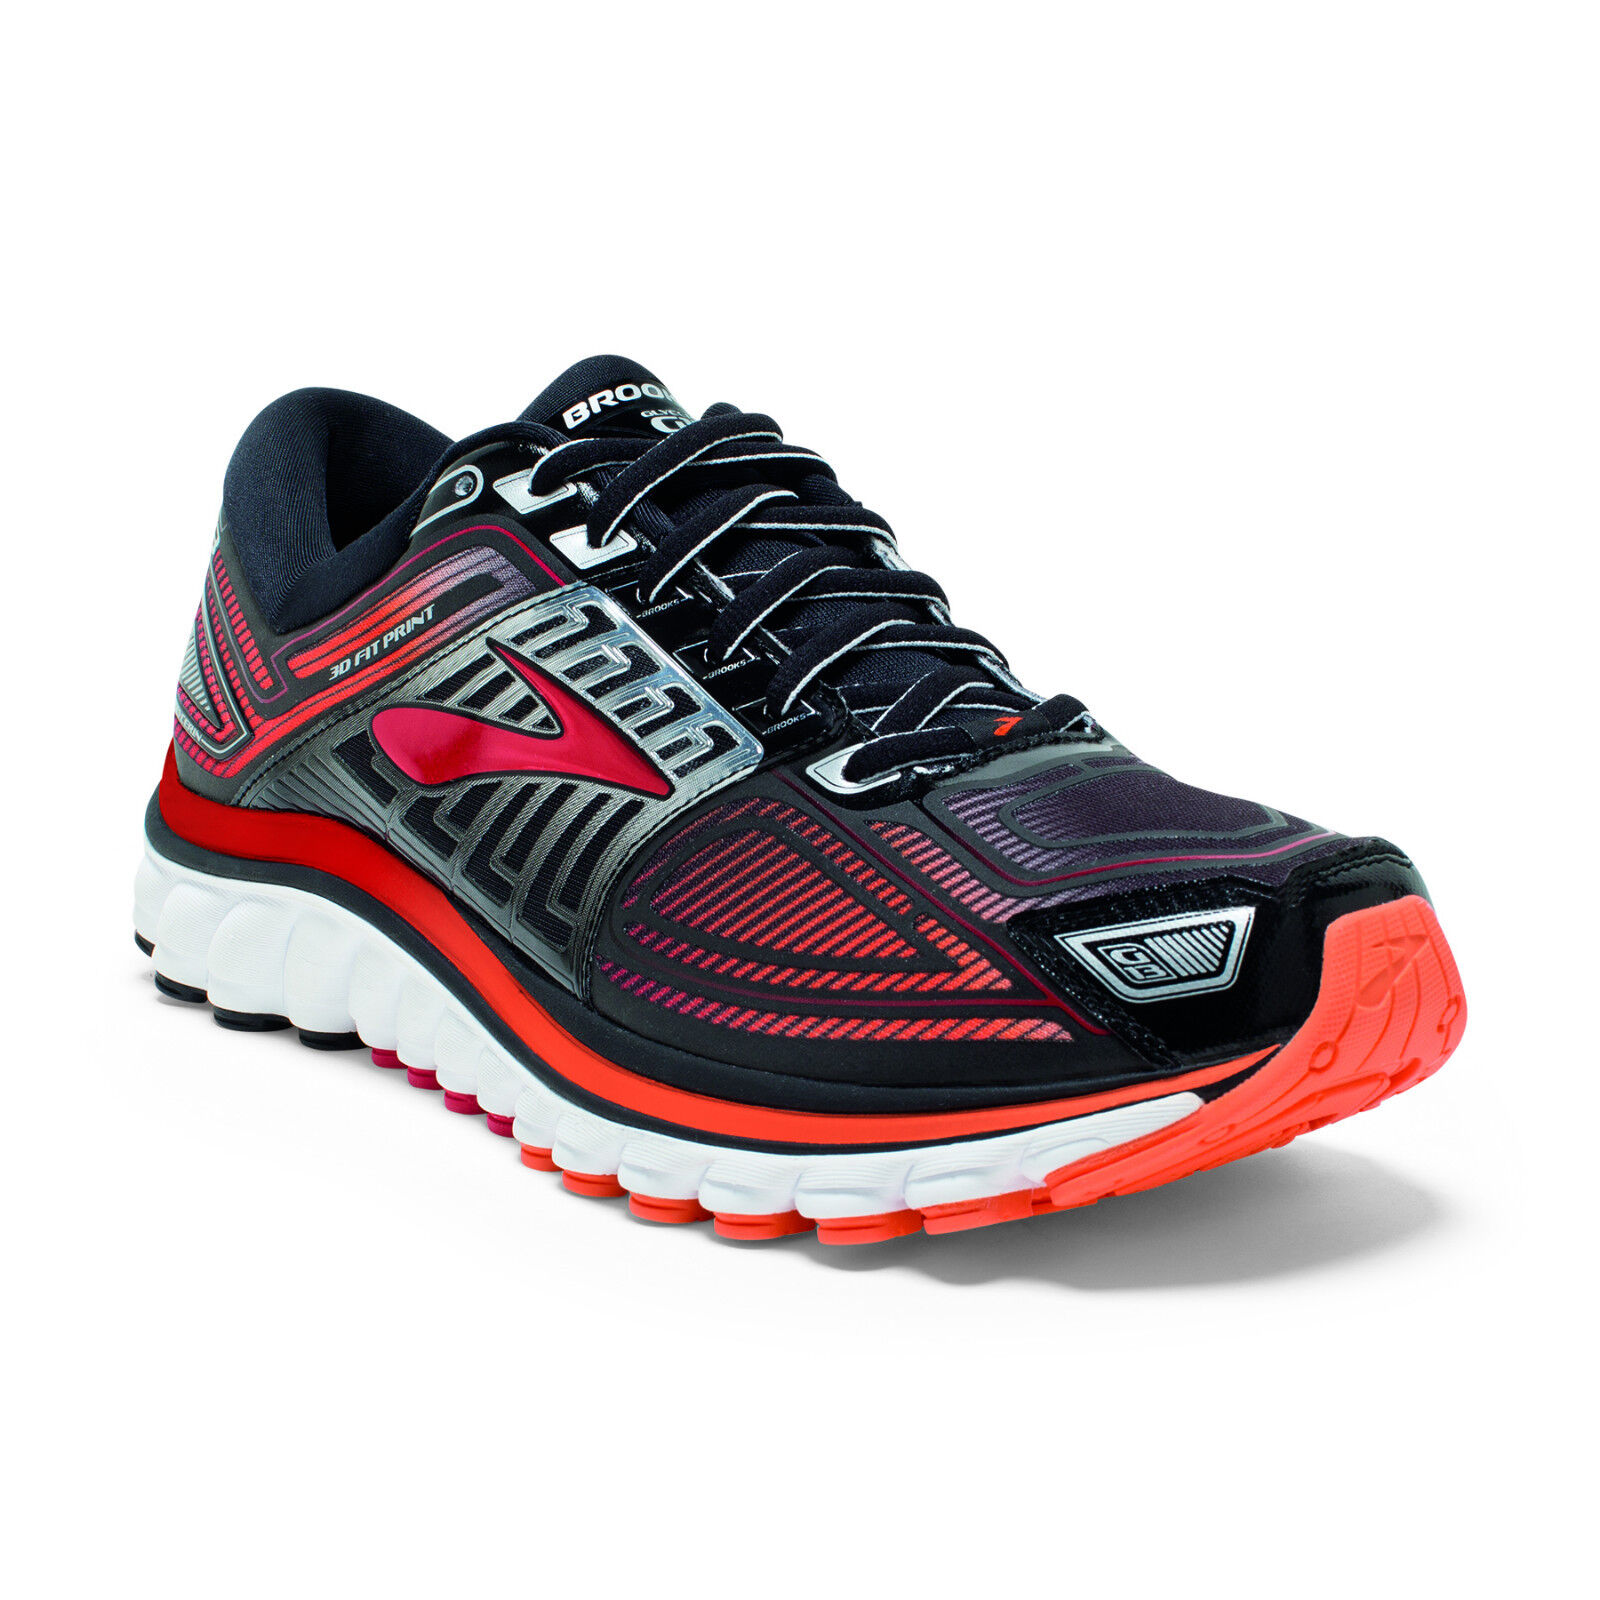 Brooks Glycerin 13 Mens Running Shoes (D) (062) | BUY NOW!